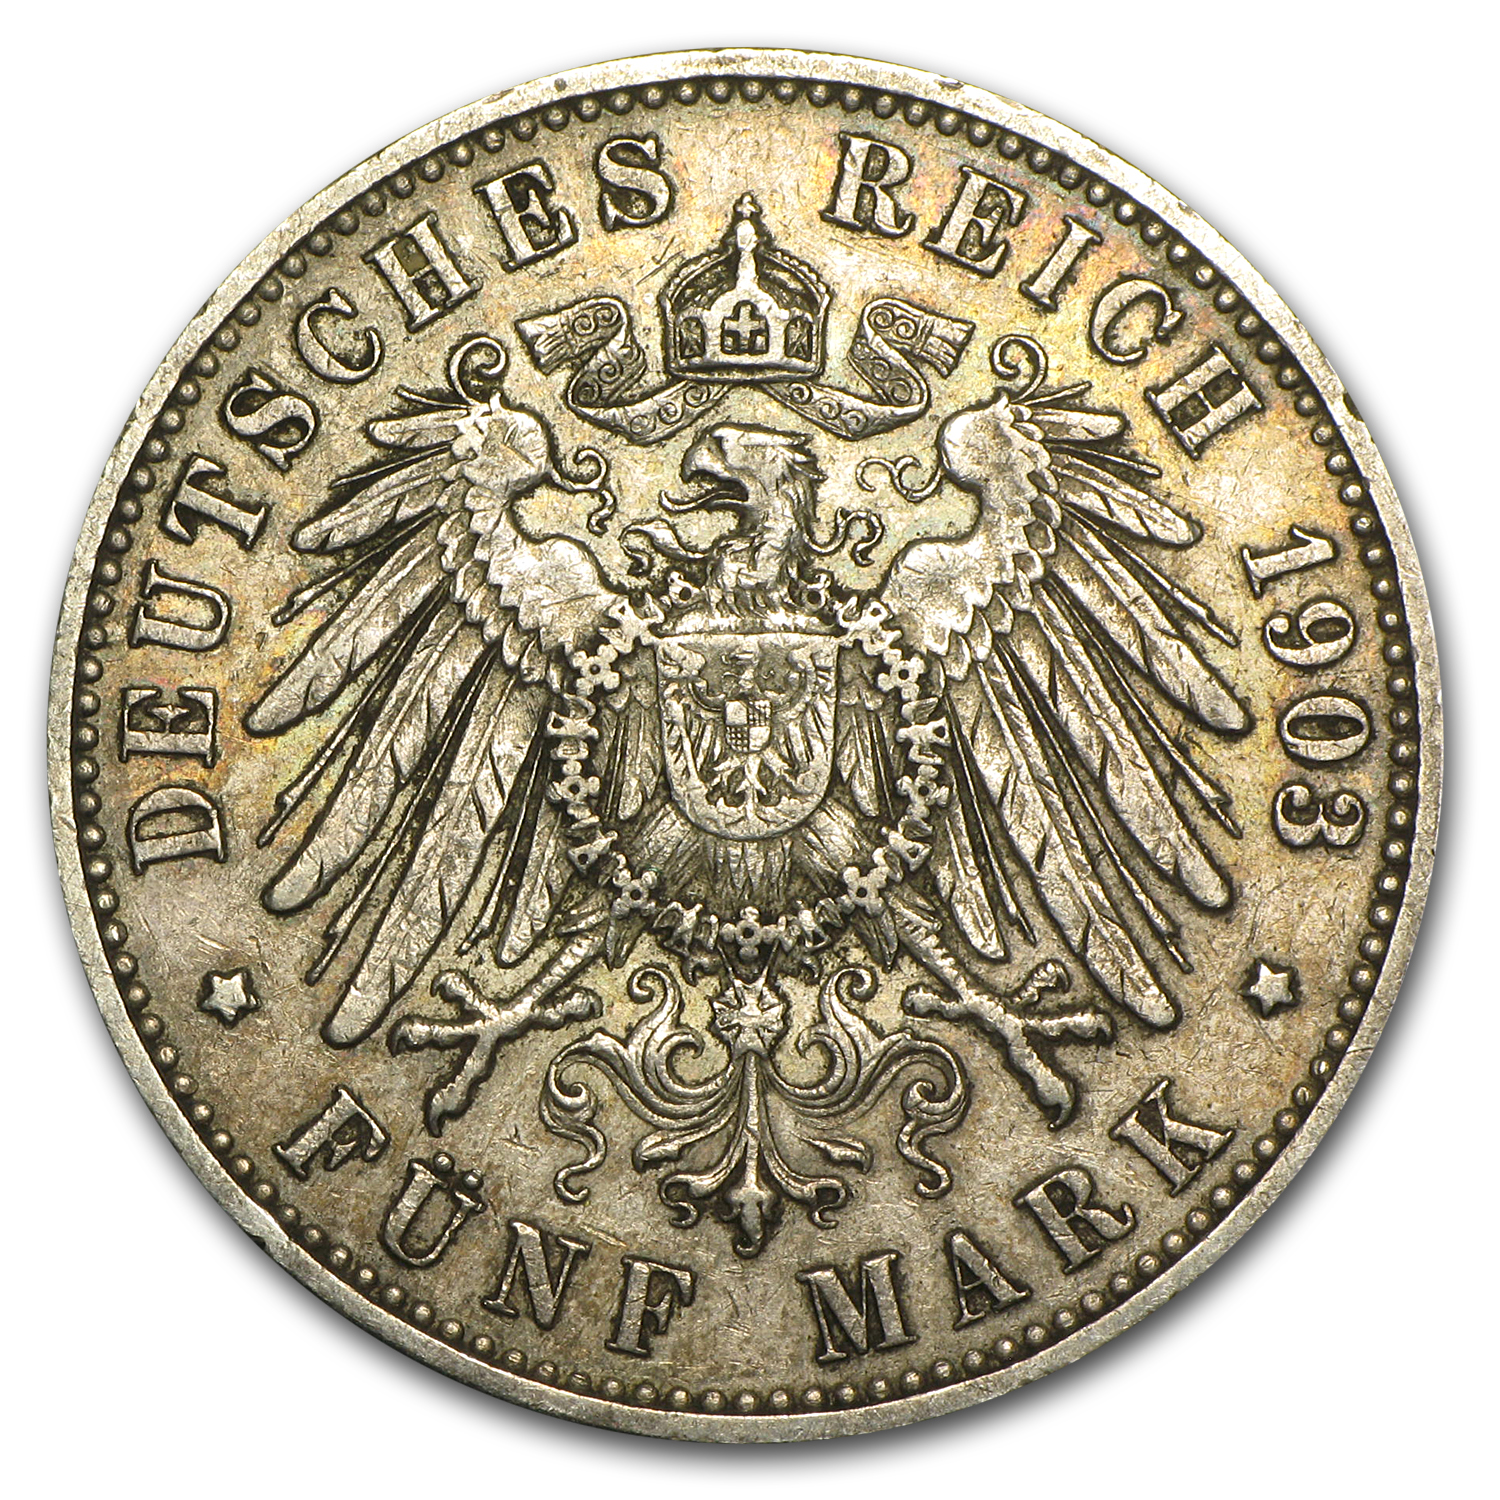 Hamburg Germany 1901-13 5 Mark EF or Better ASW .8037